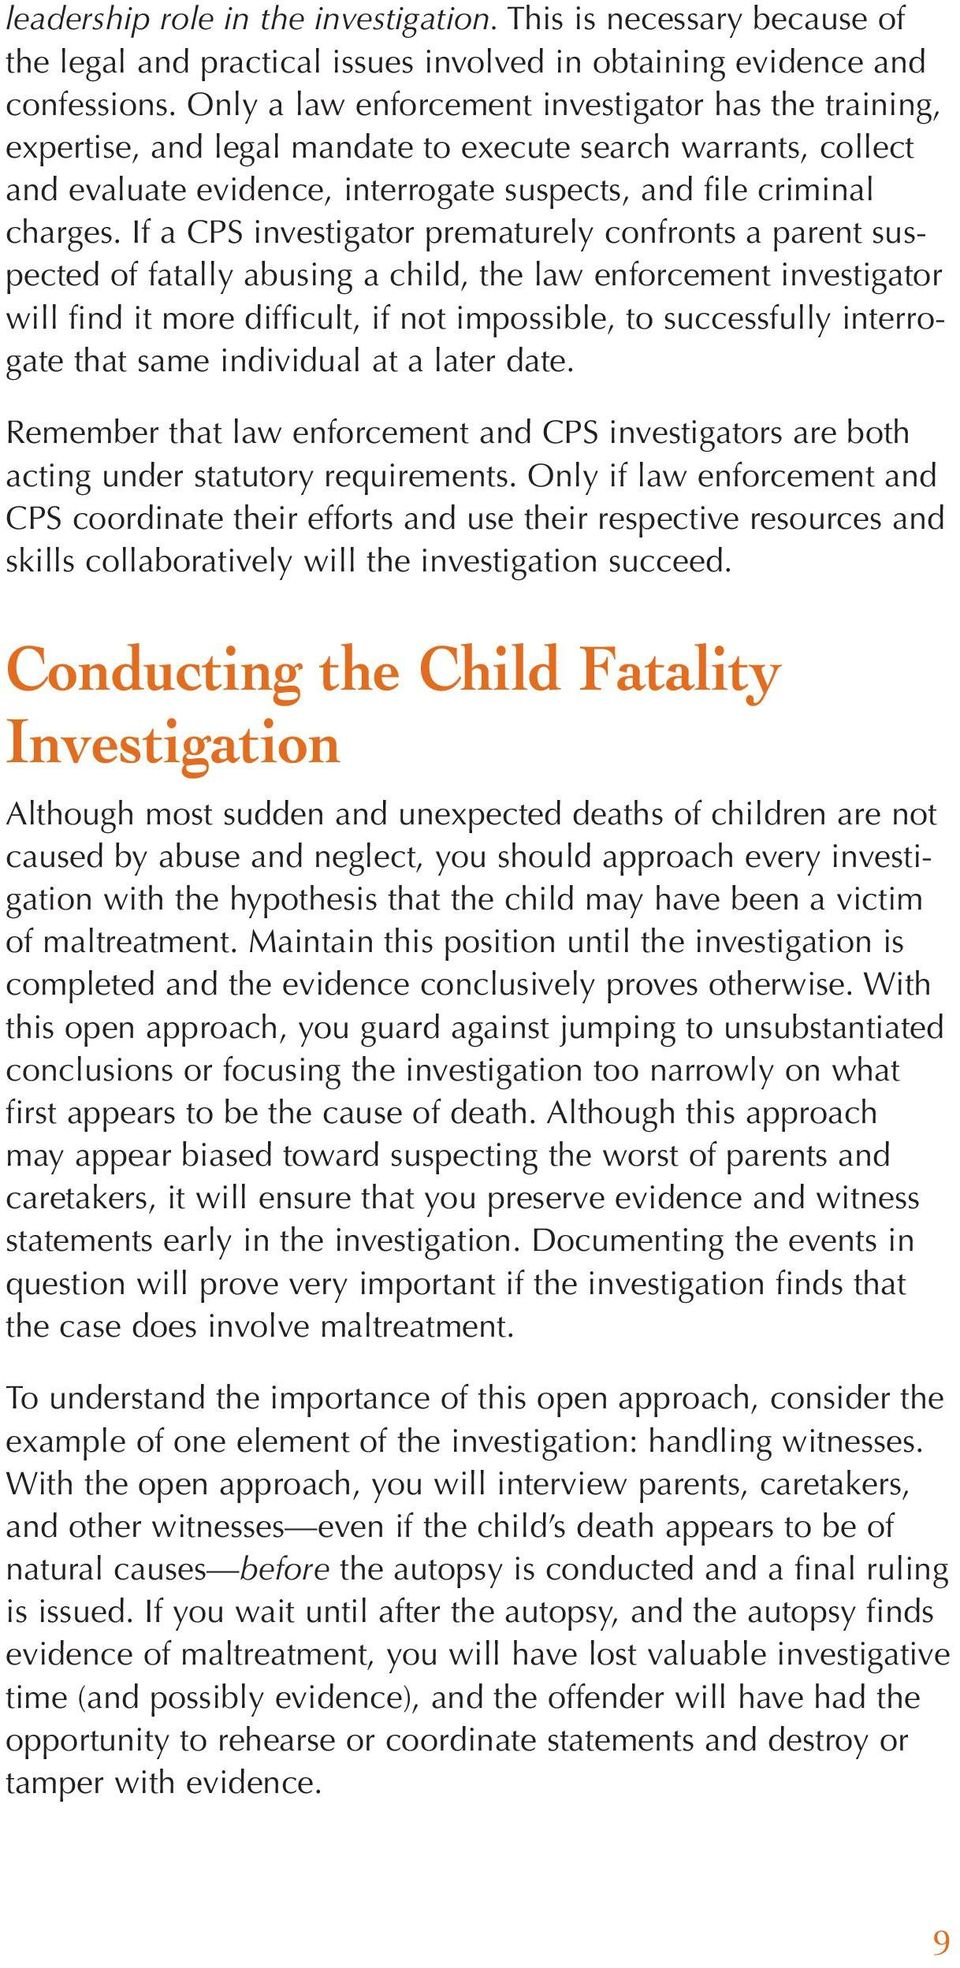 If a CPS investigator prematurely confronts a parent suspected of fatally abusing a child, the law enforcement investigator will find it more difficult, if not impossible, to successfully interrogate